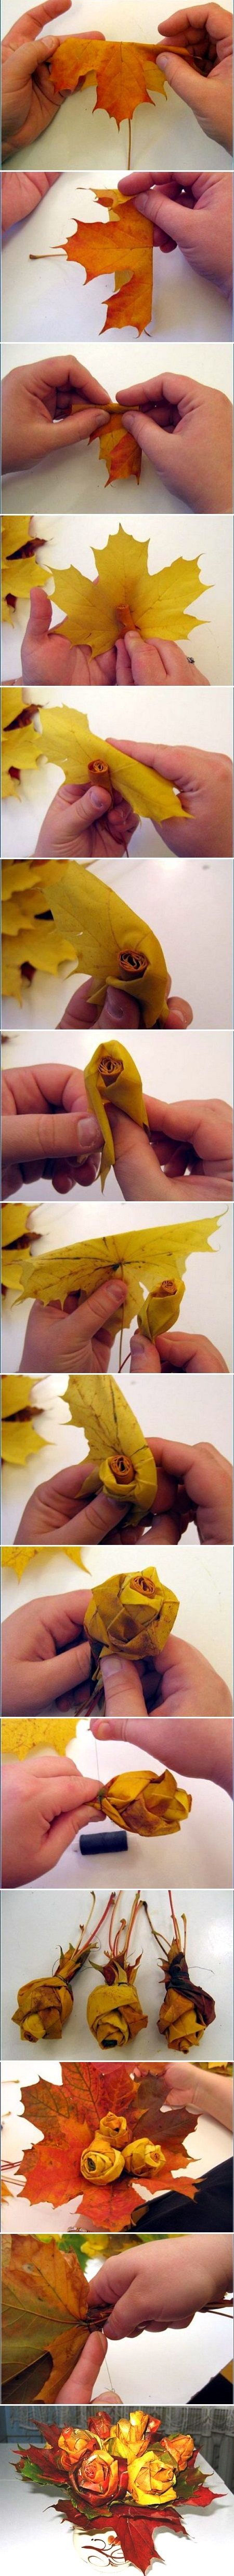 Rose bouquet made from fall leaves. This is a stunning idea. Imagine the possibilities! Lovely!